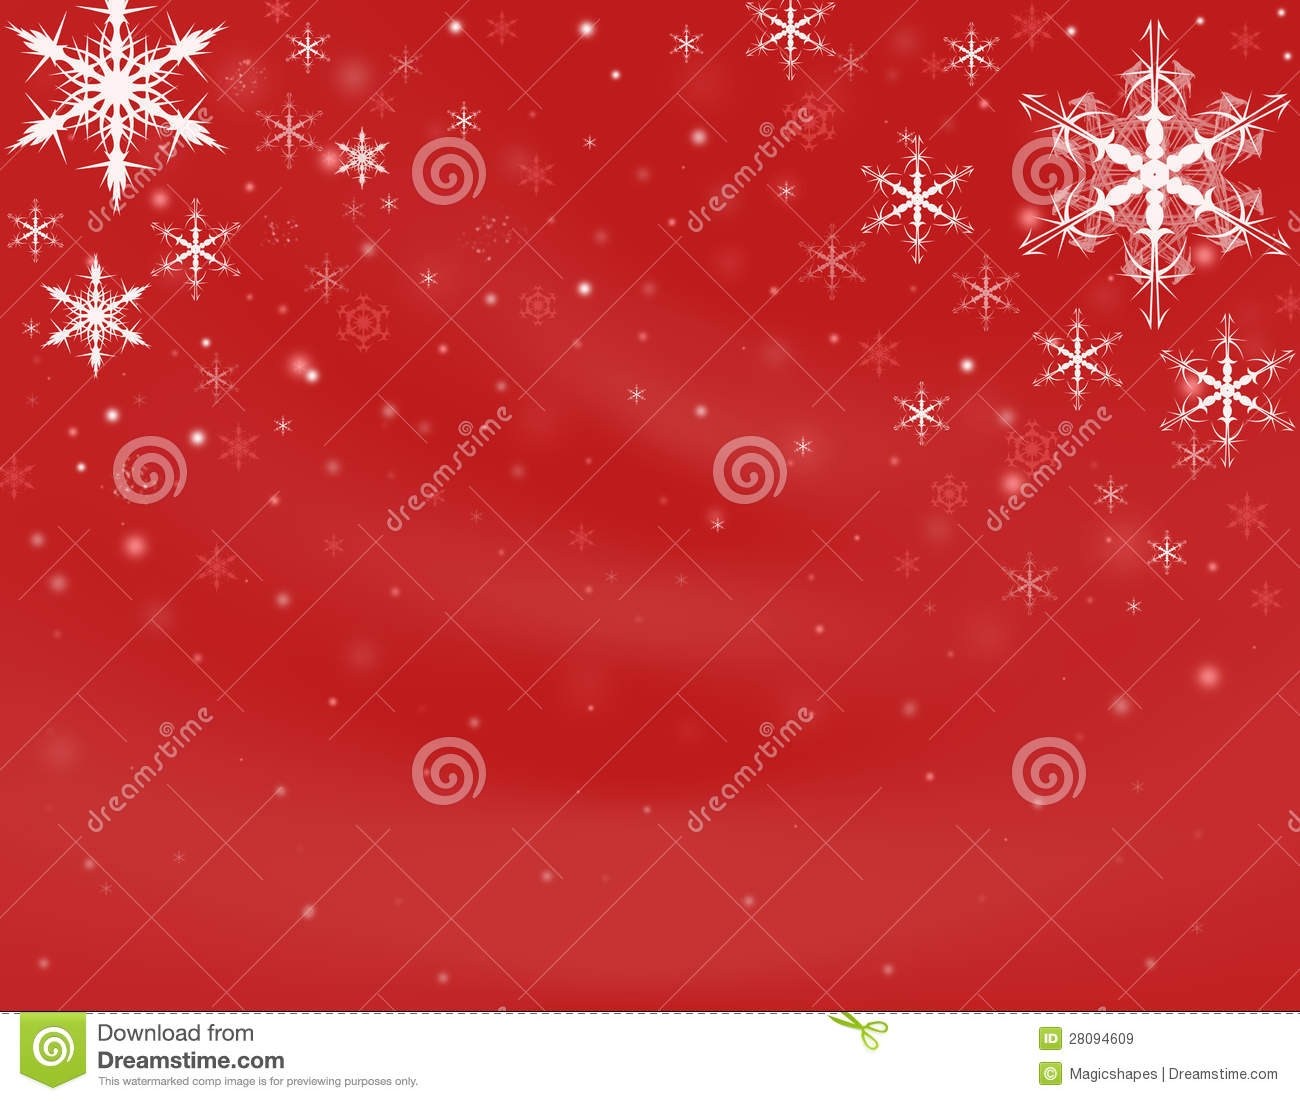 Christmas Background Images For Photoshop.Red Christmas Background Stock Illustration Illustration Of